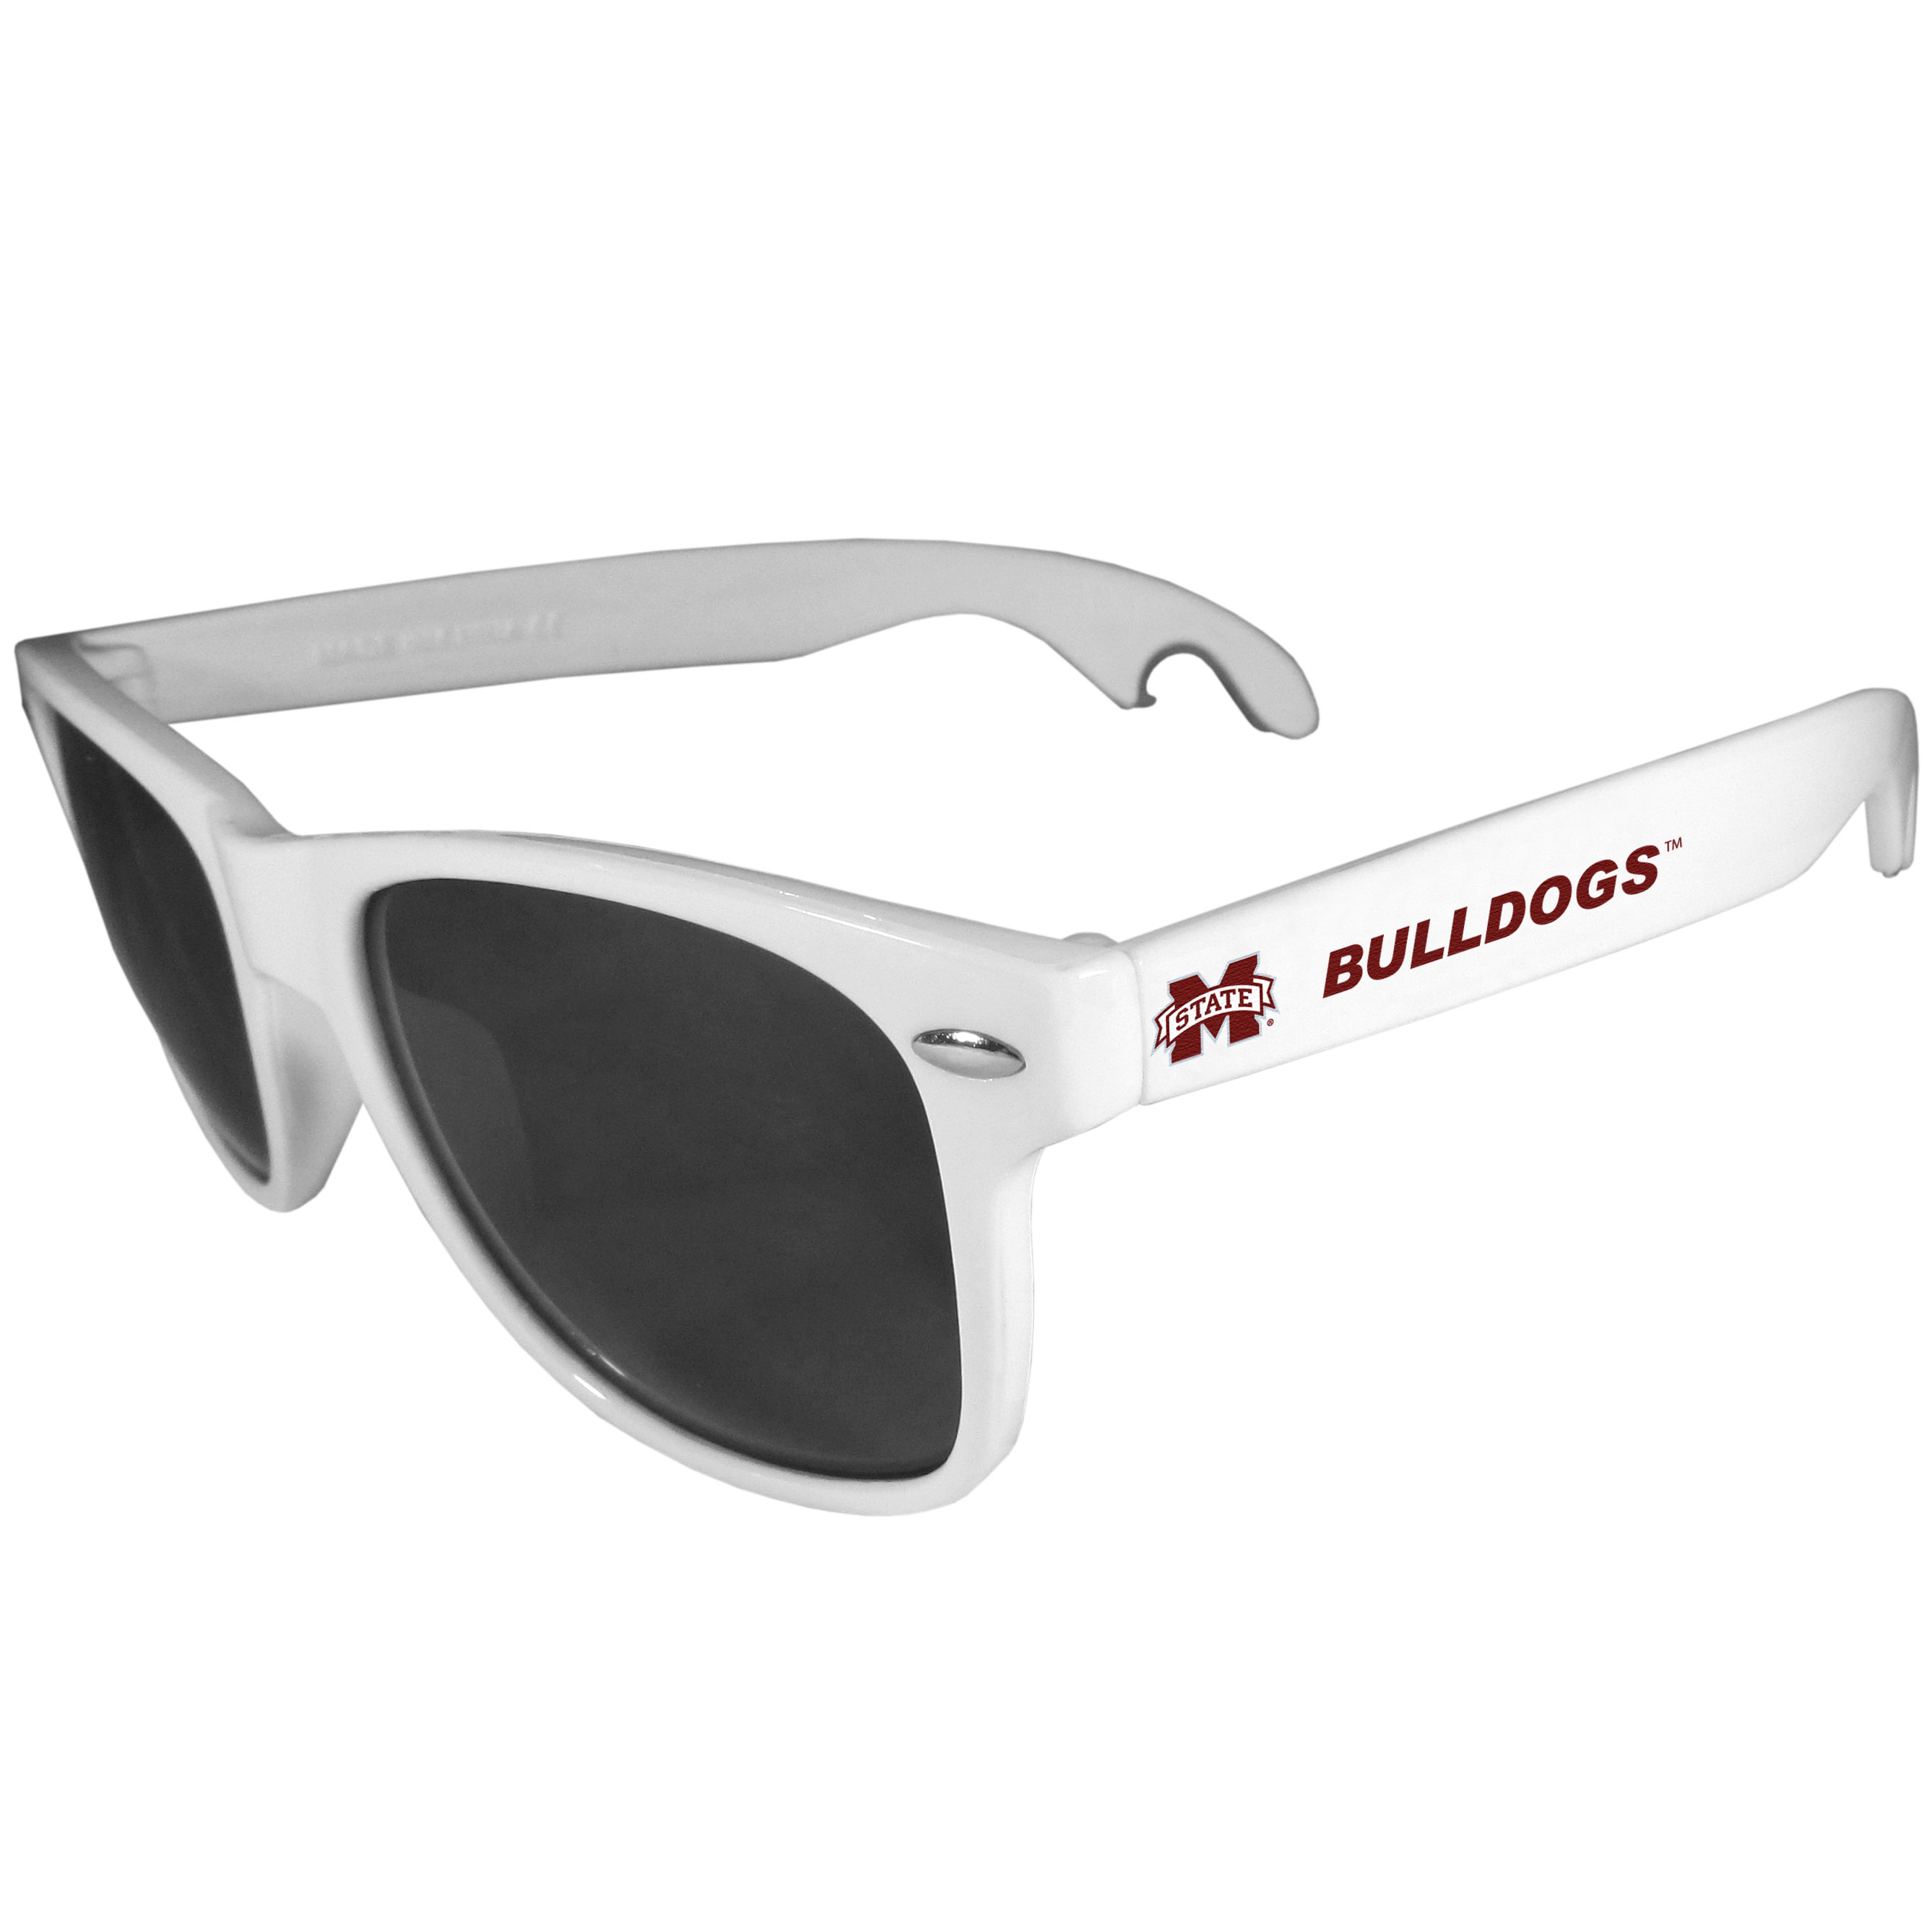 Mississippi St. Bulldogs Beachfarer Bottle Opener Sunglasses, White - Seriously, these sunglasses open bottles! Keep the party going with these amazing Mississippi St. Bulldogs bottle opener sunglasses. The stylish retro frames feature team designs on the arms and functional bottle openers on the end of the arms. Whether you are at the beach or having a backyard BBQ on game day, these shades will keep your eyes protected with 100% UVA/UVB protection and keep you hydrated with the handy bottle opener arms.